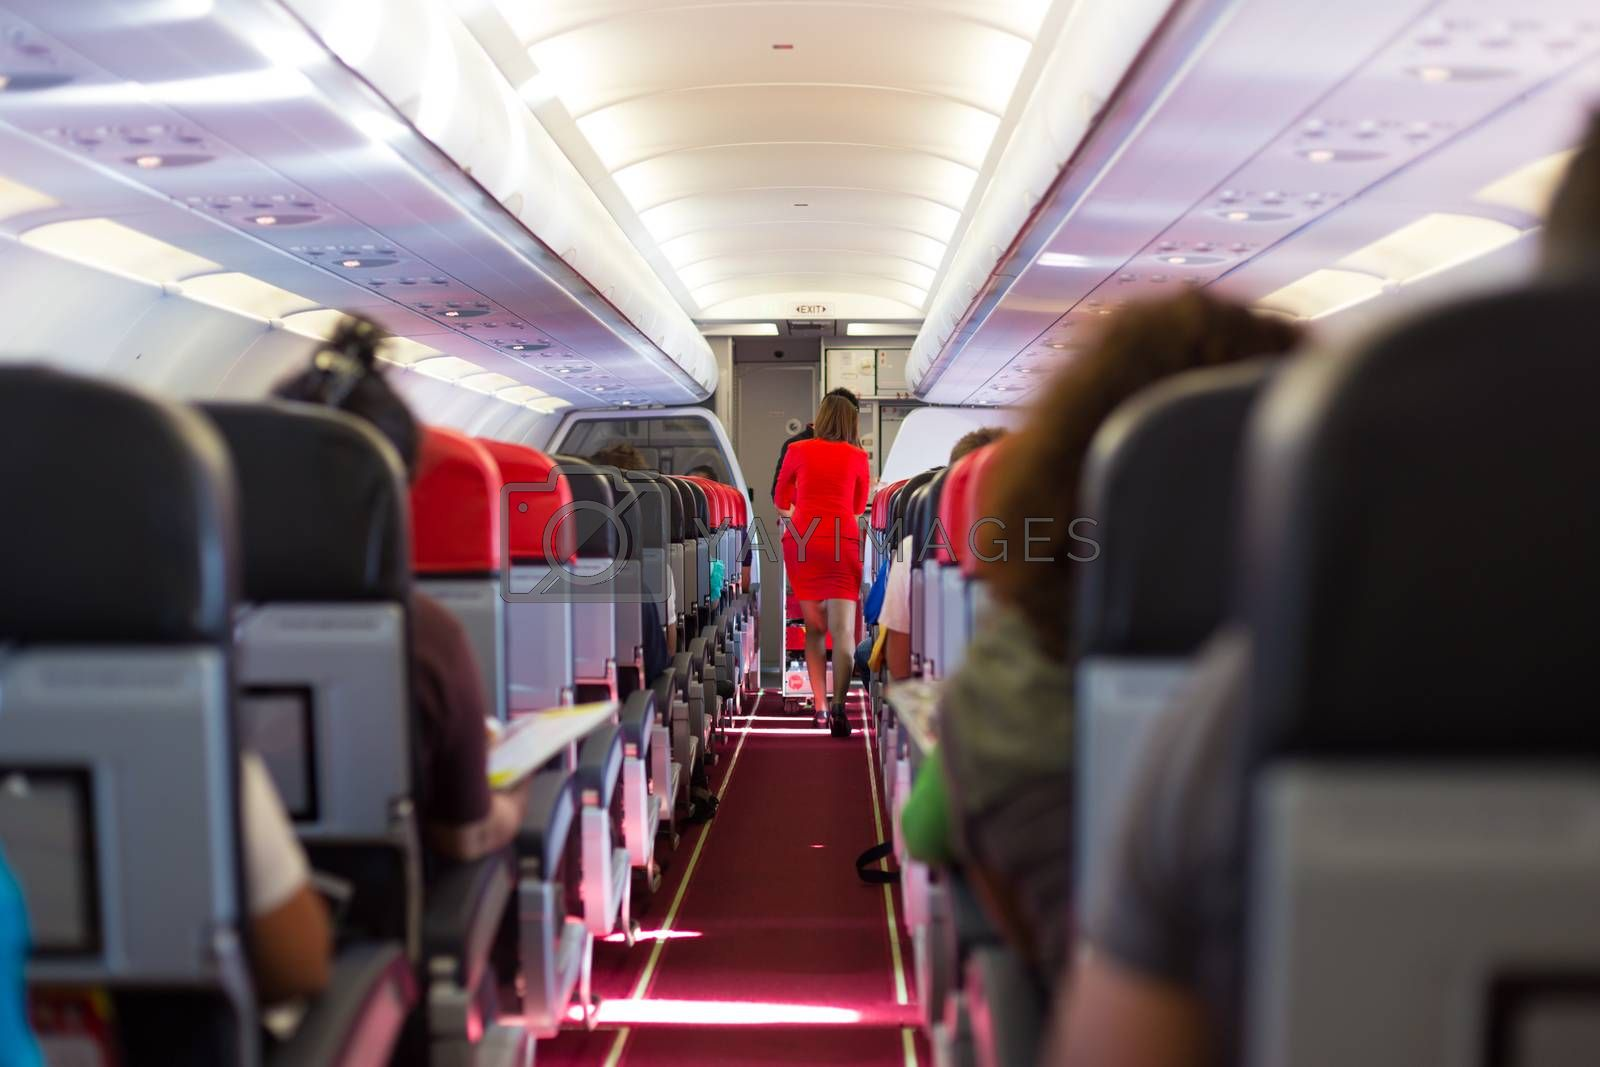 Interior of airplane with passengers on seats and stewardess in red uniform walking the aisle.